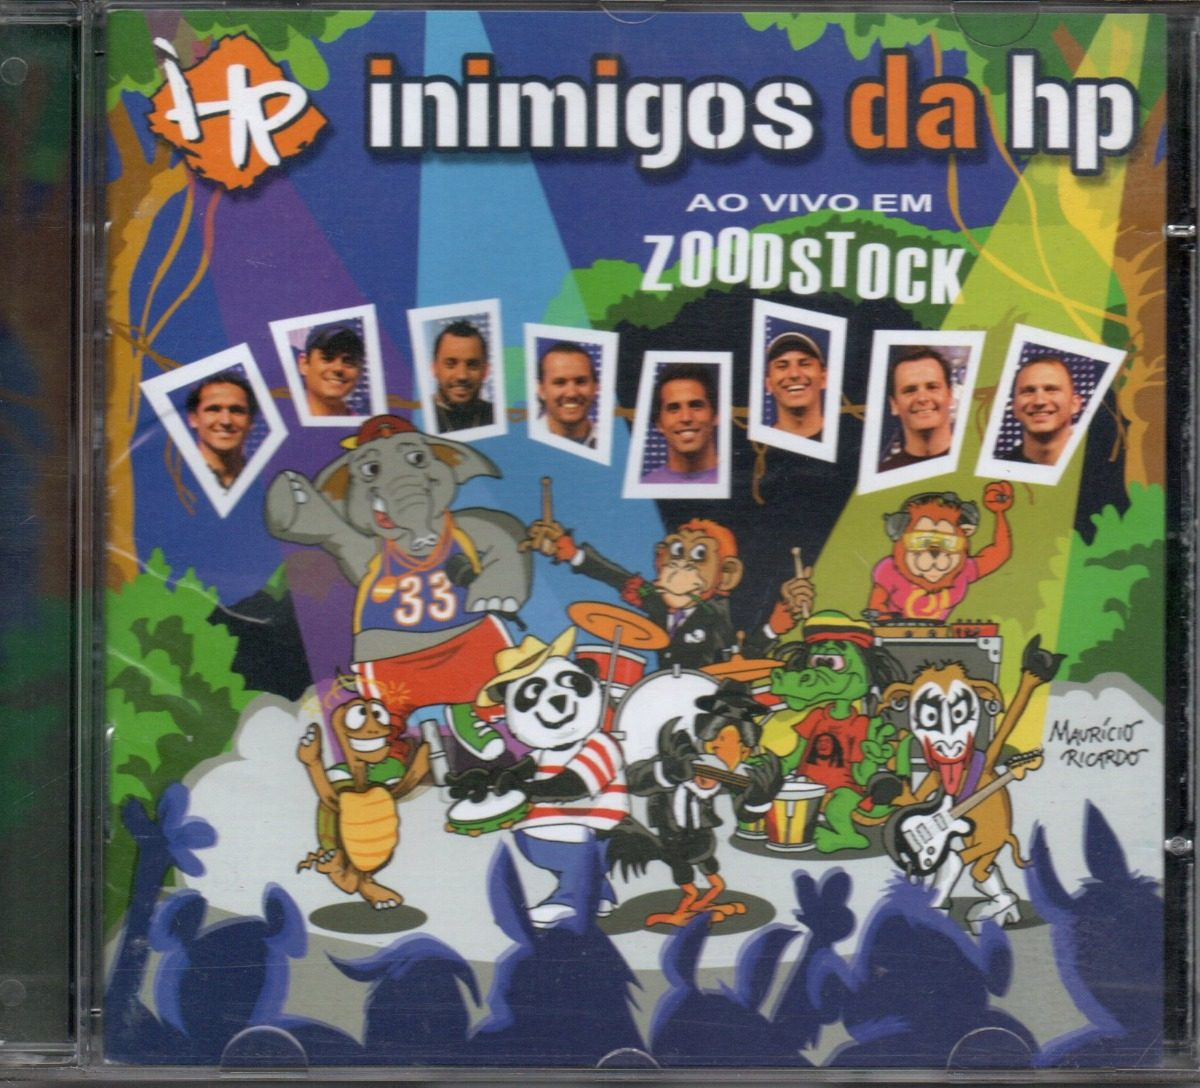 cd do inimigos da hp 2009